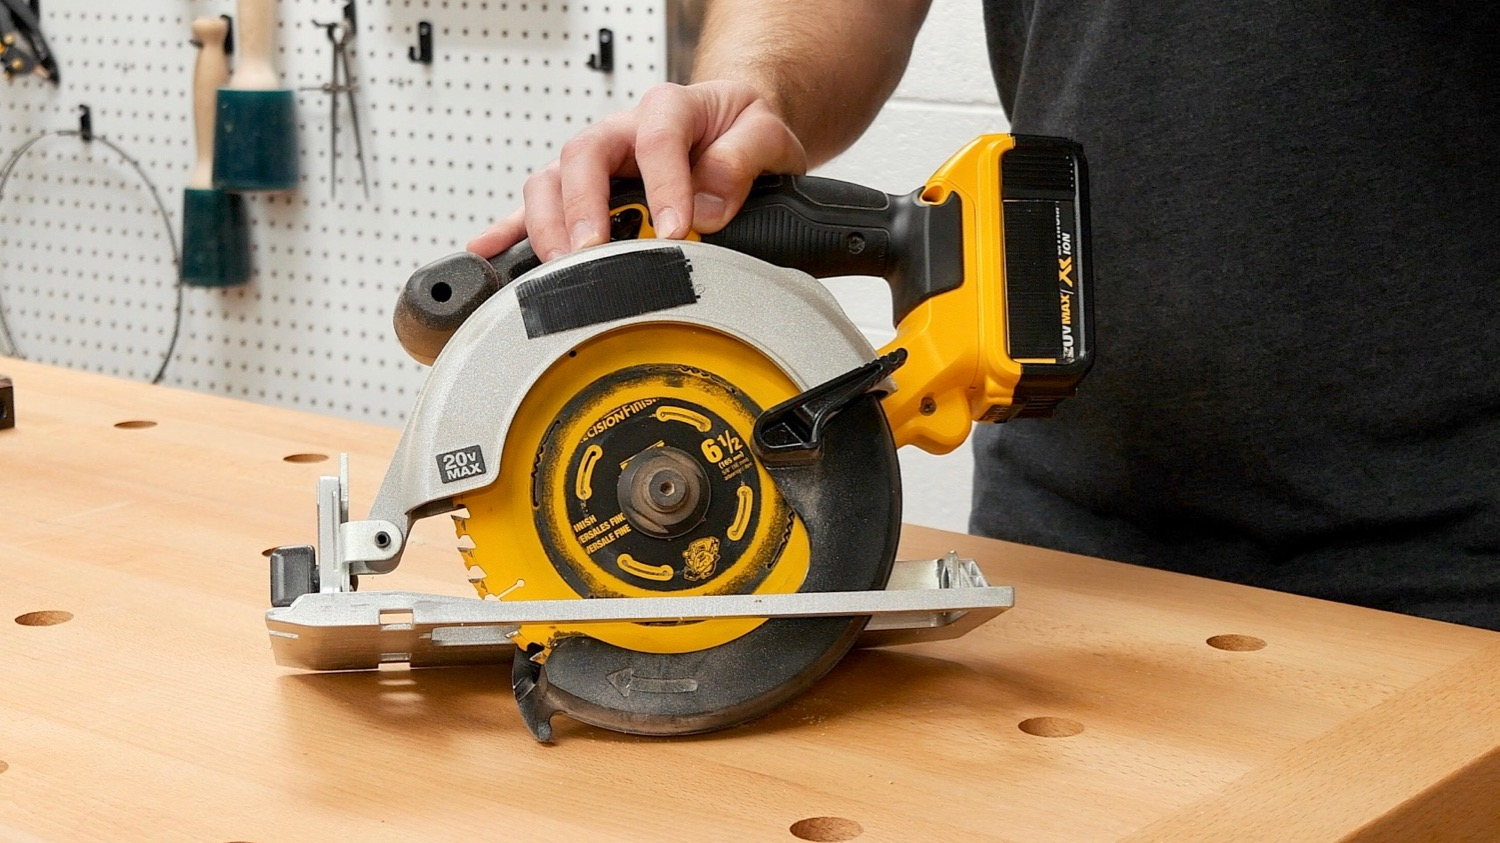 5 Woodworking Tools For Beginners Woodworking Quick Tips Crafted Workshop